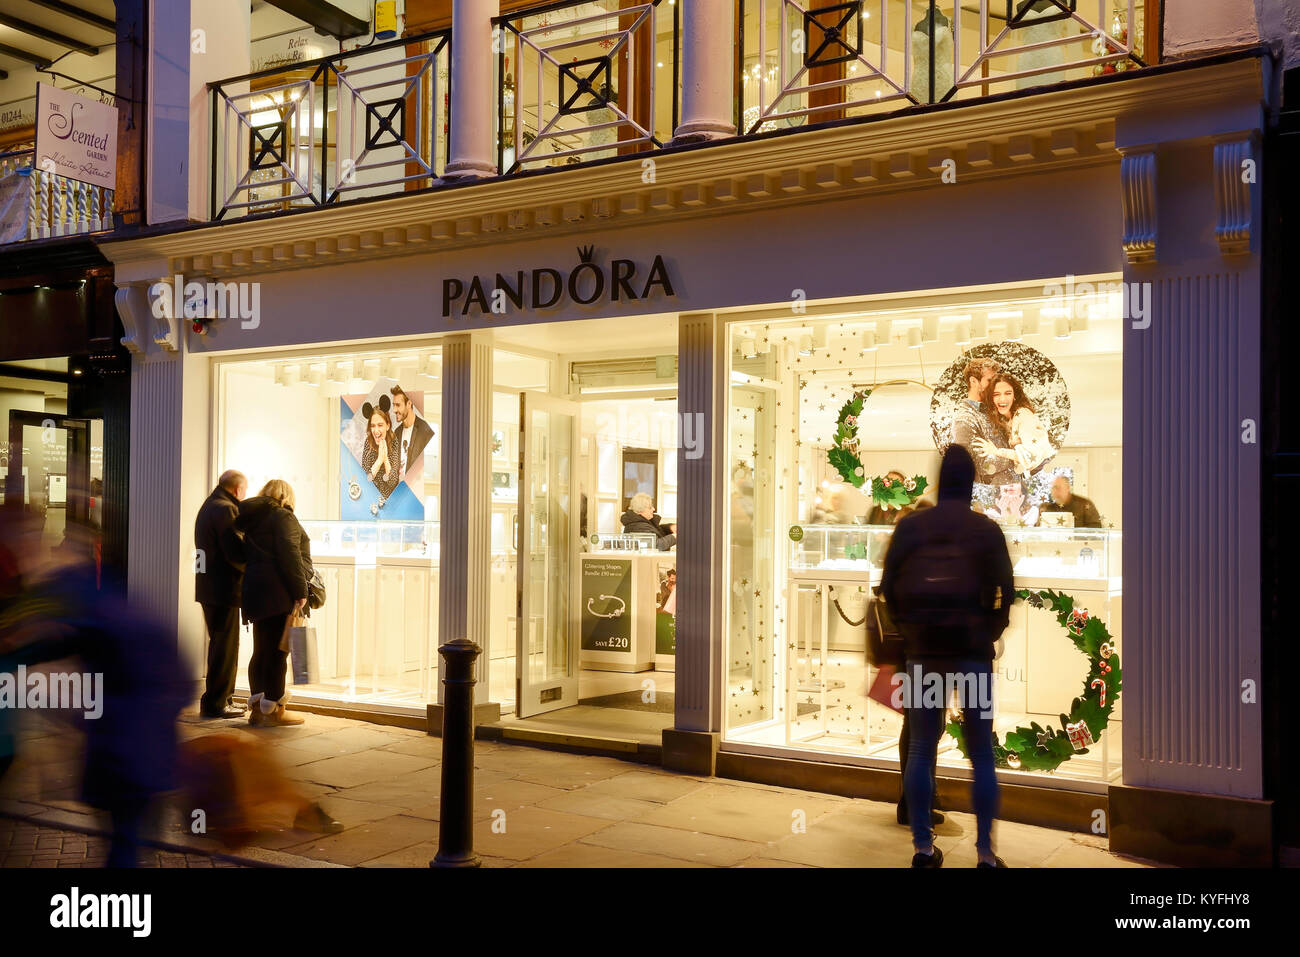 43067fdee Pandora jewellery shop front on Northgate Street in Chester city centre UK  - Stock Image